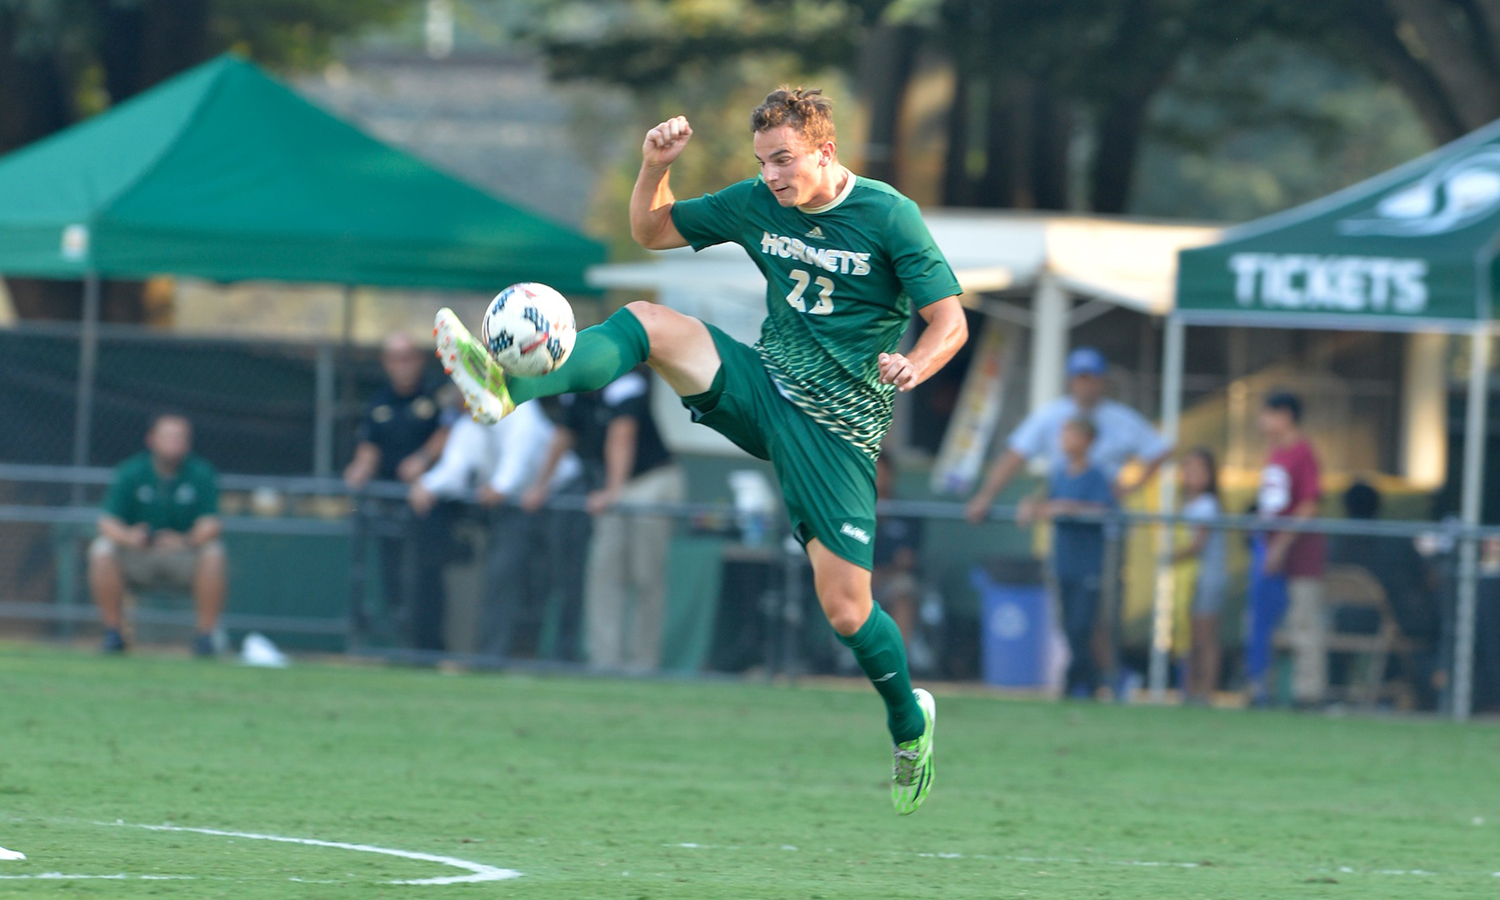 MEN'S SOCCER TAKES DOWN UVU IN COME-FROM-BEHIND WIN